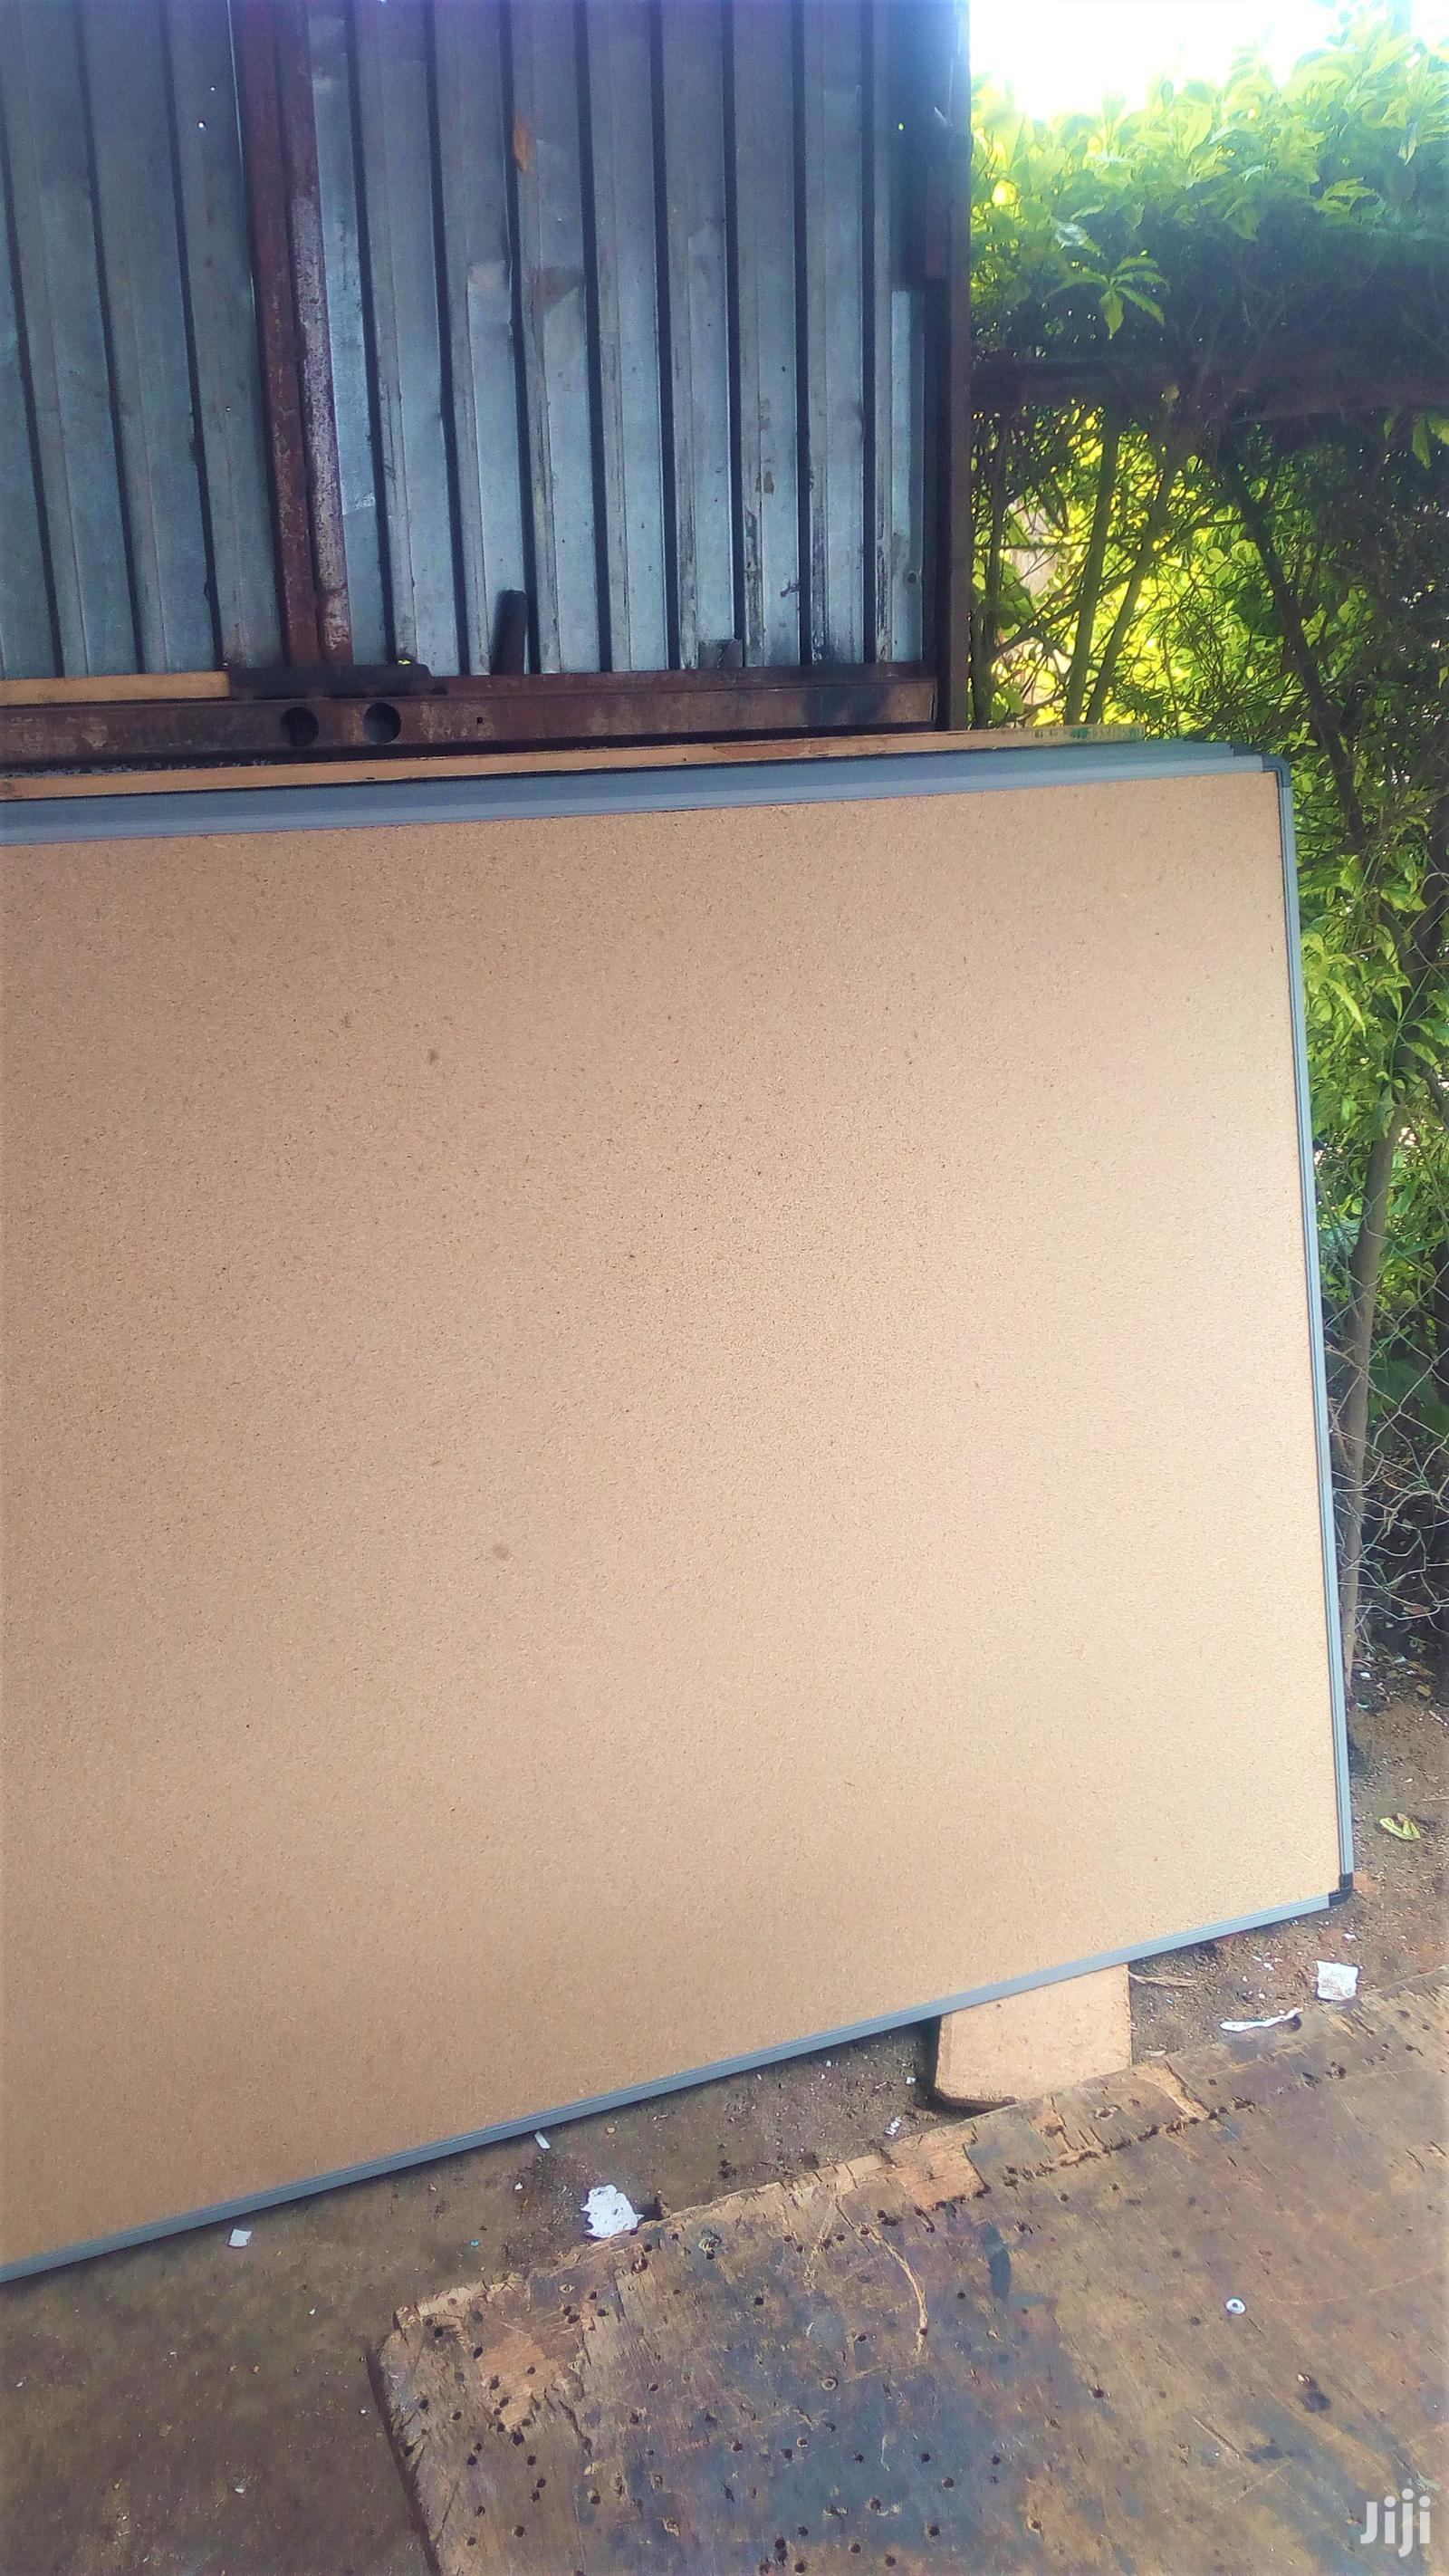 Local Whiteboards-small Sizes & Normal Size Whiteboards